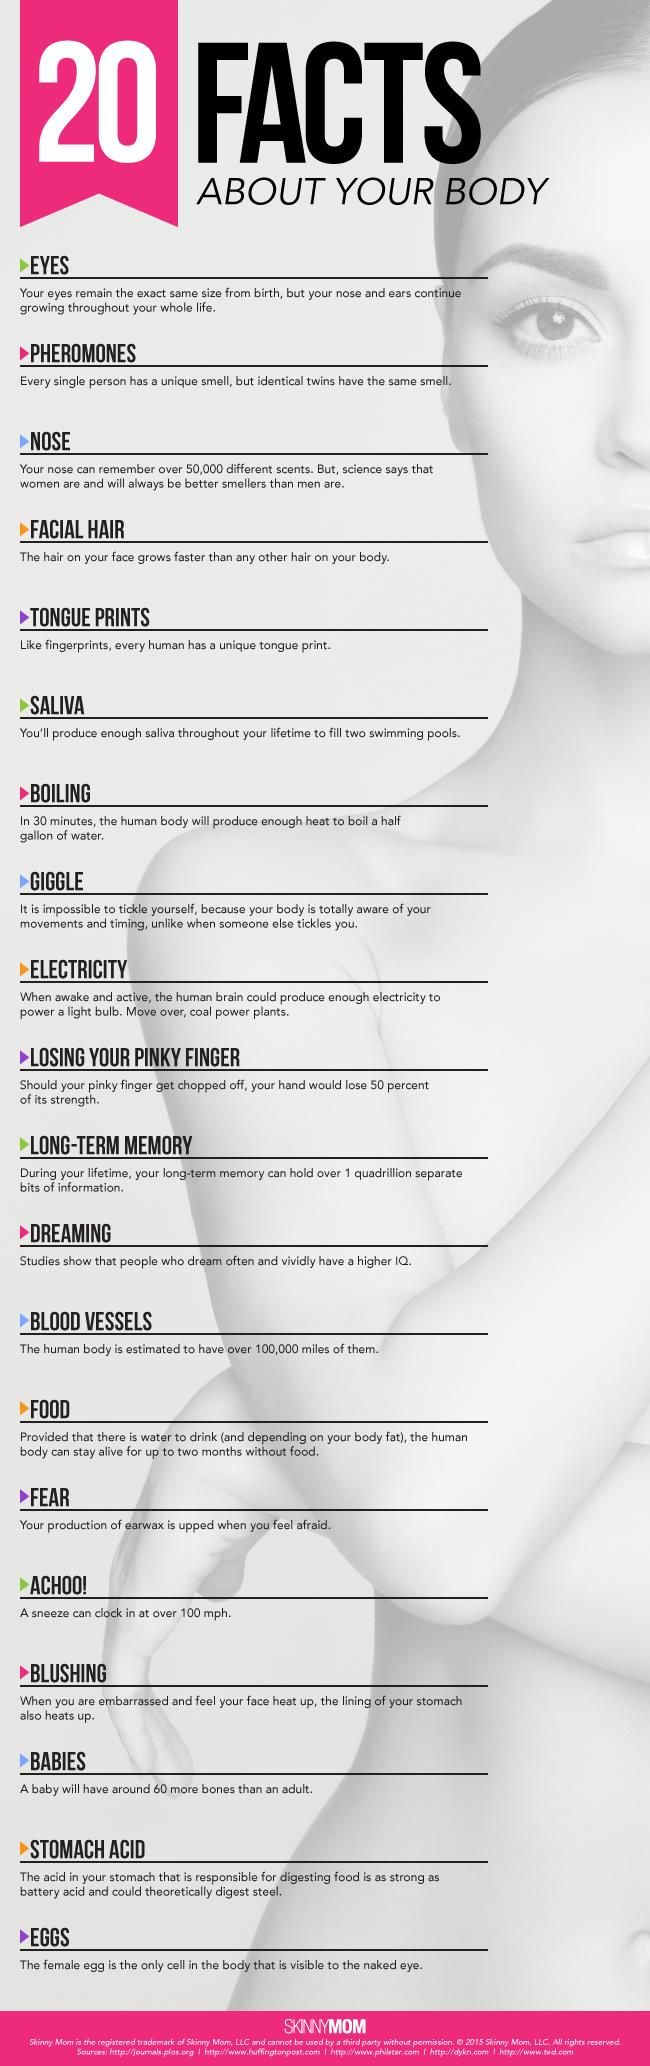 weird facts about your body infographic                                                                                                                                                                                 More